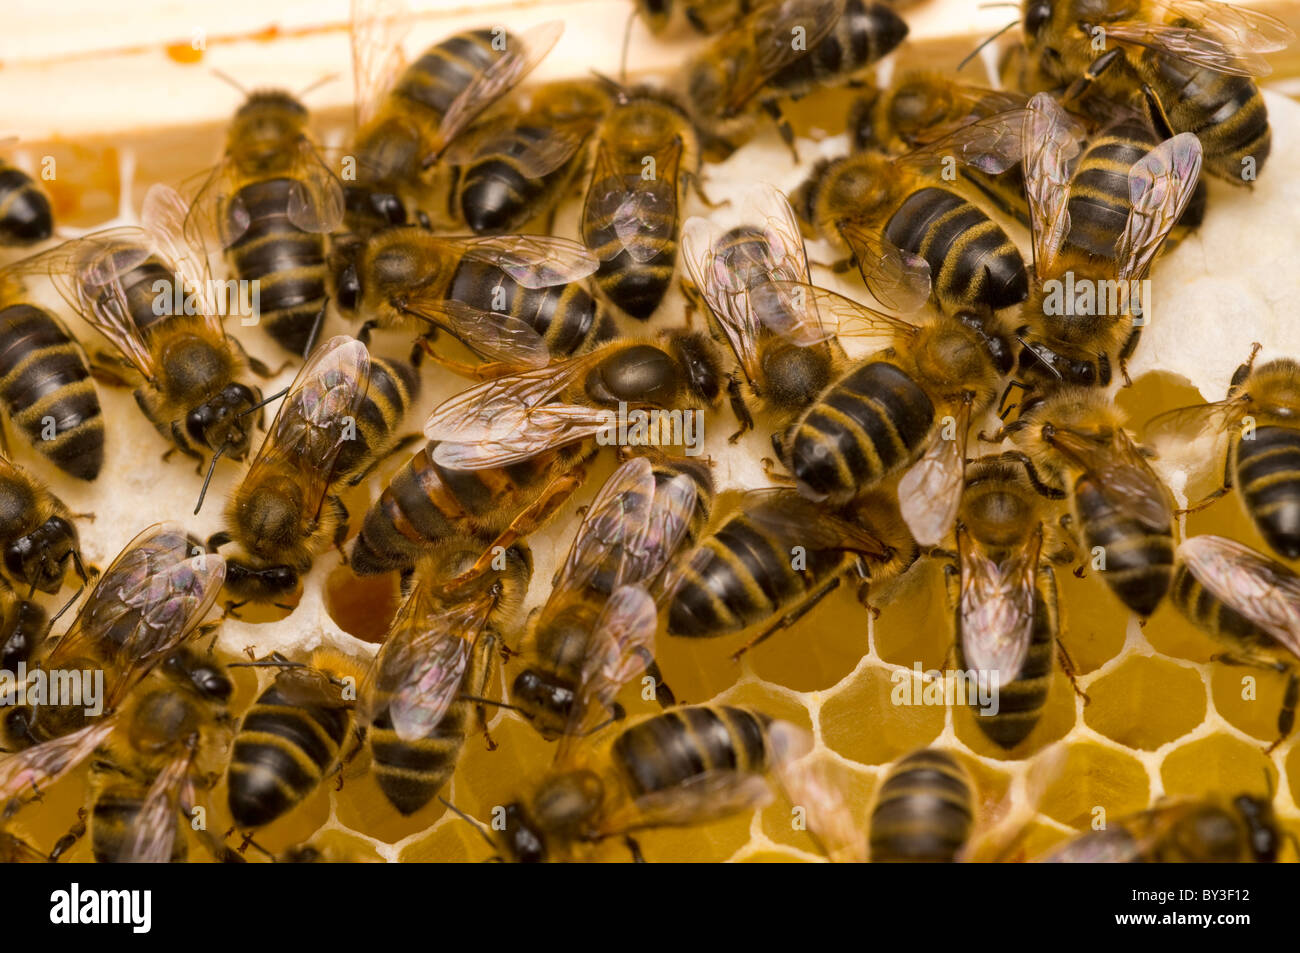 QUEEN BEE Honeybees Apis mellifera - Stock Image